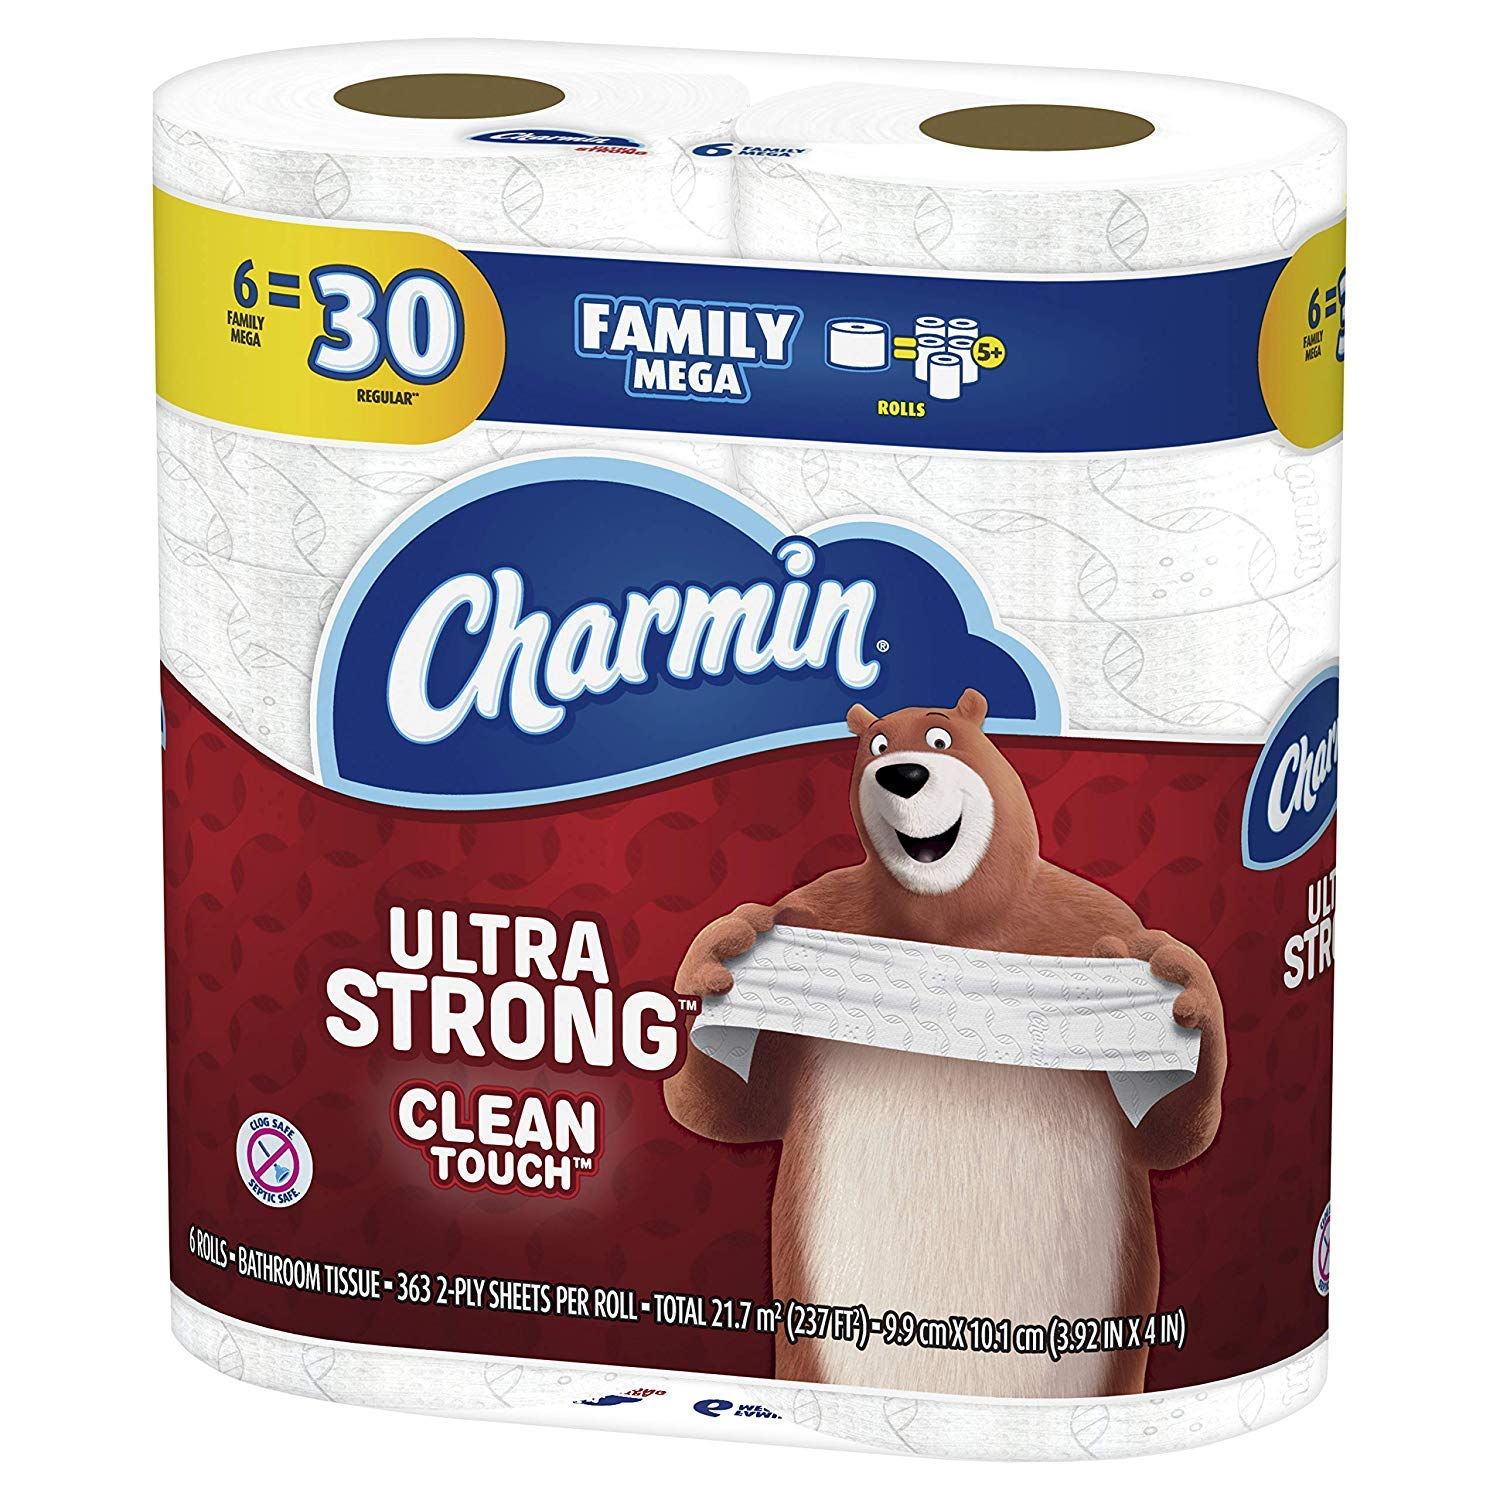 Charmin Ultra Strong Clean Touch Toilet Paper, 6 Family Mega Rolls = 30 Regular Rolls, Prime Pantry by Charmin